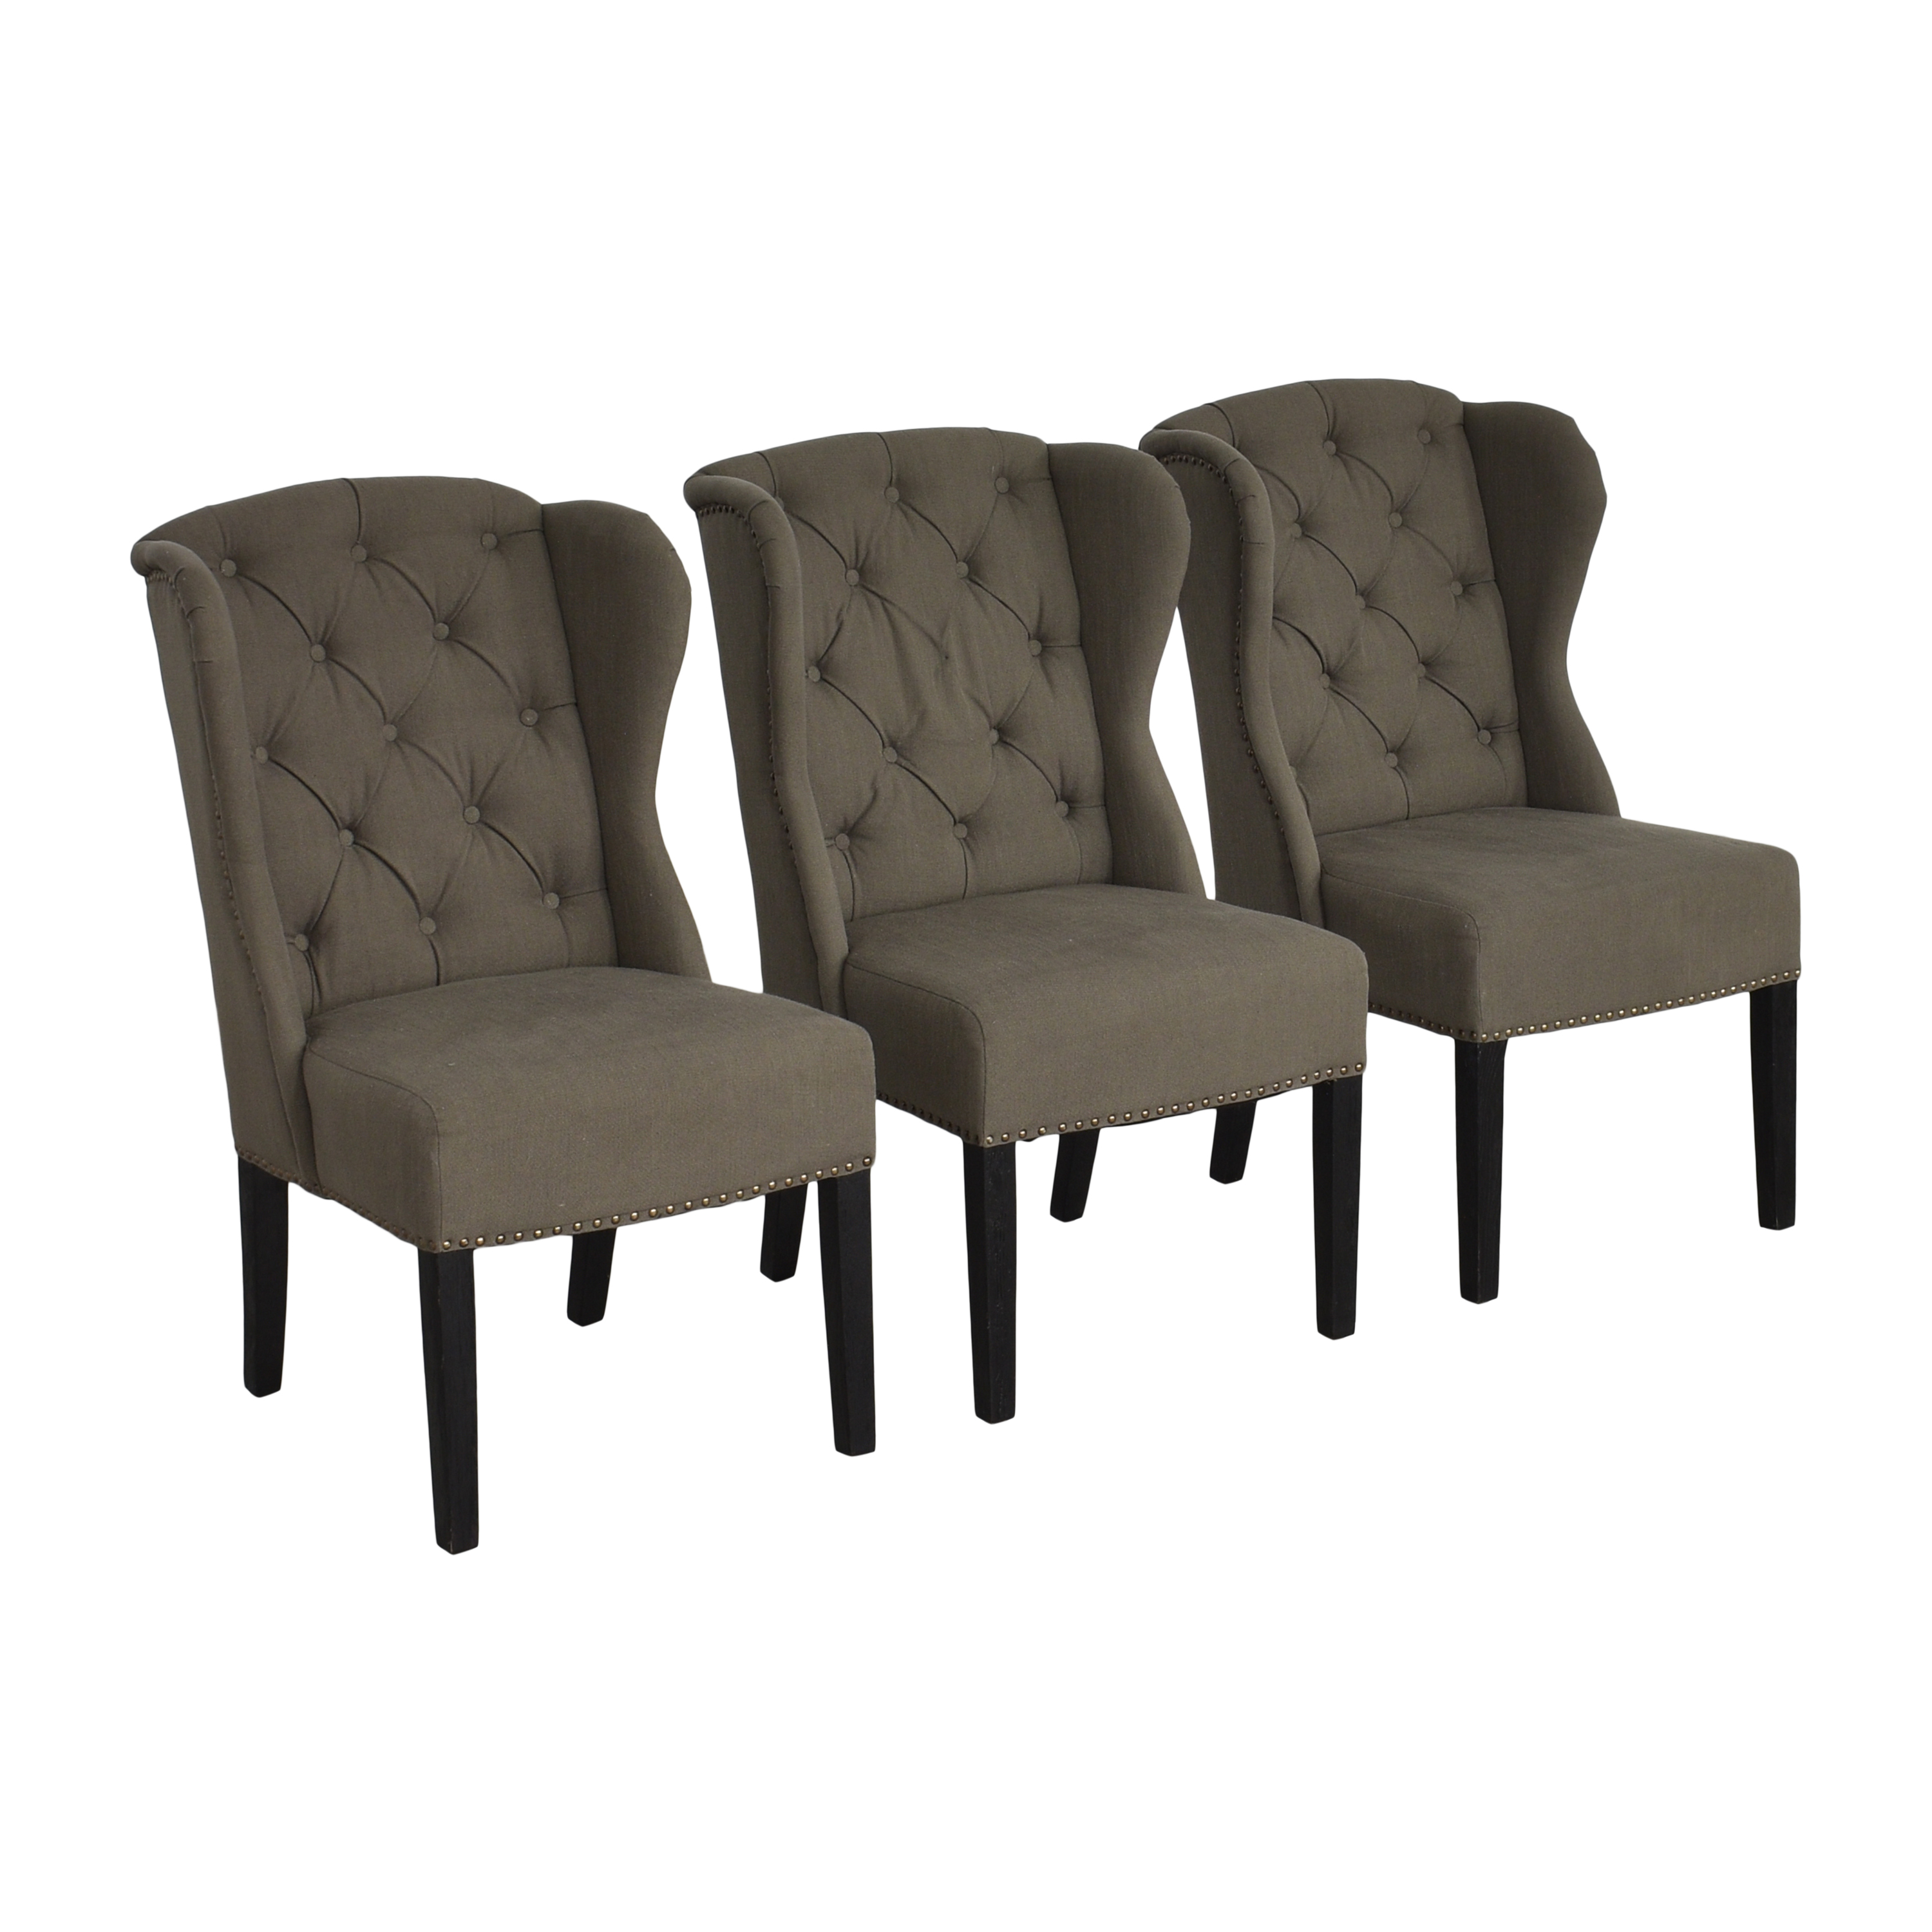 Arhaus Arhaus Greyson Tufted Upholstered Dining Side Chairs second hand